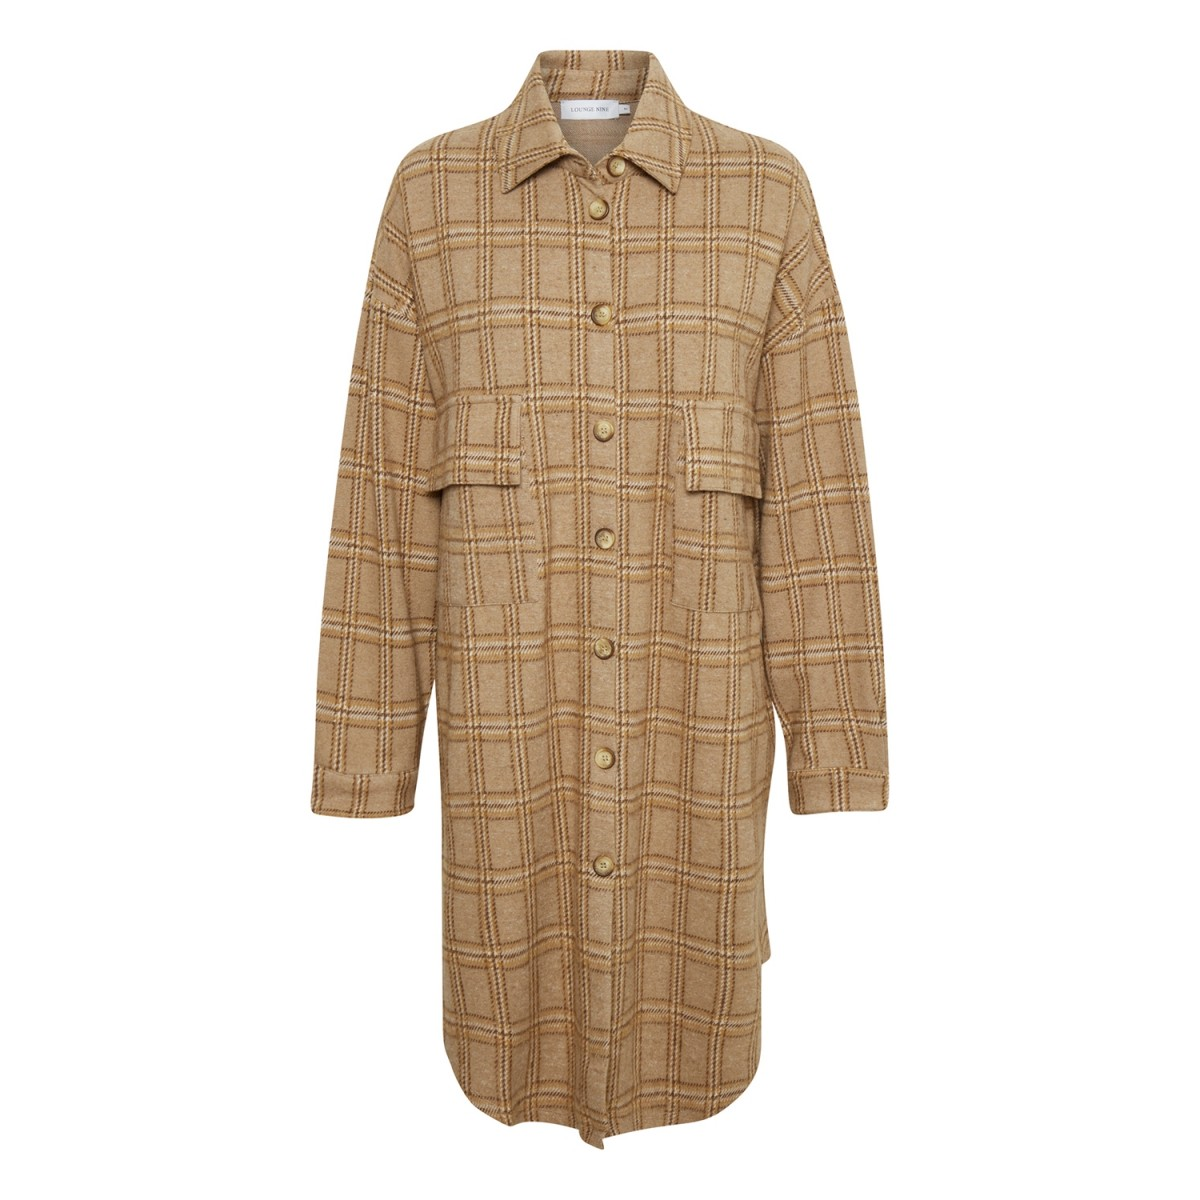 Lounge Nine 10607192 Bryleigh Shirt Checked Incense-31